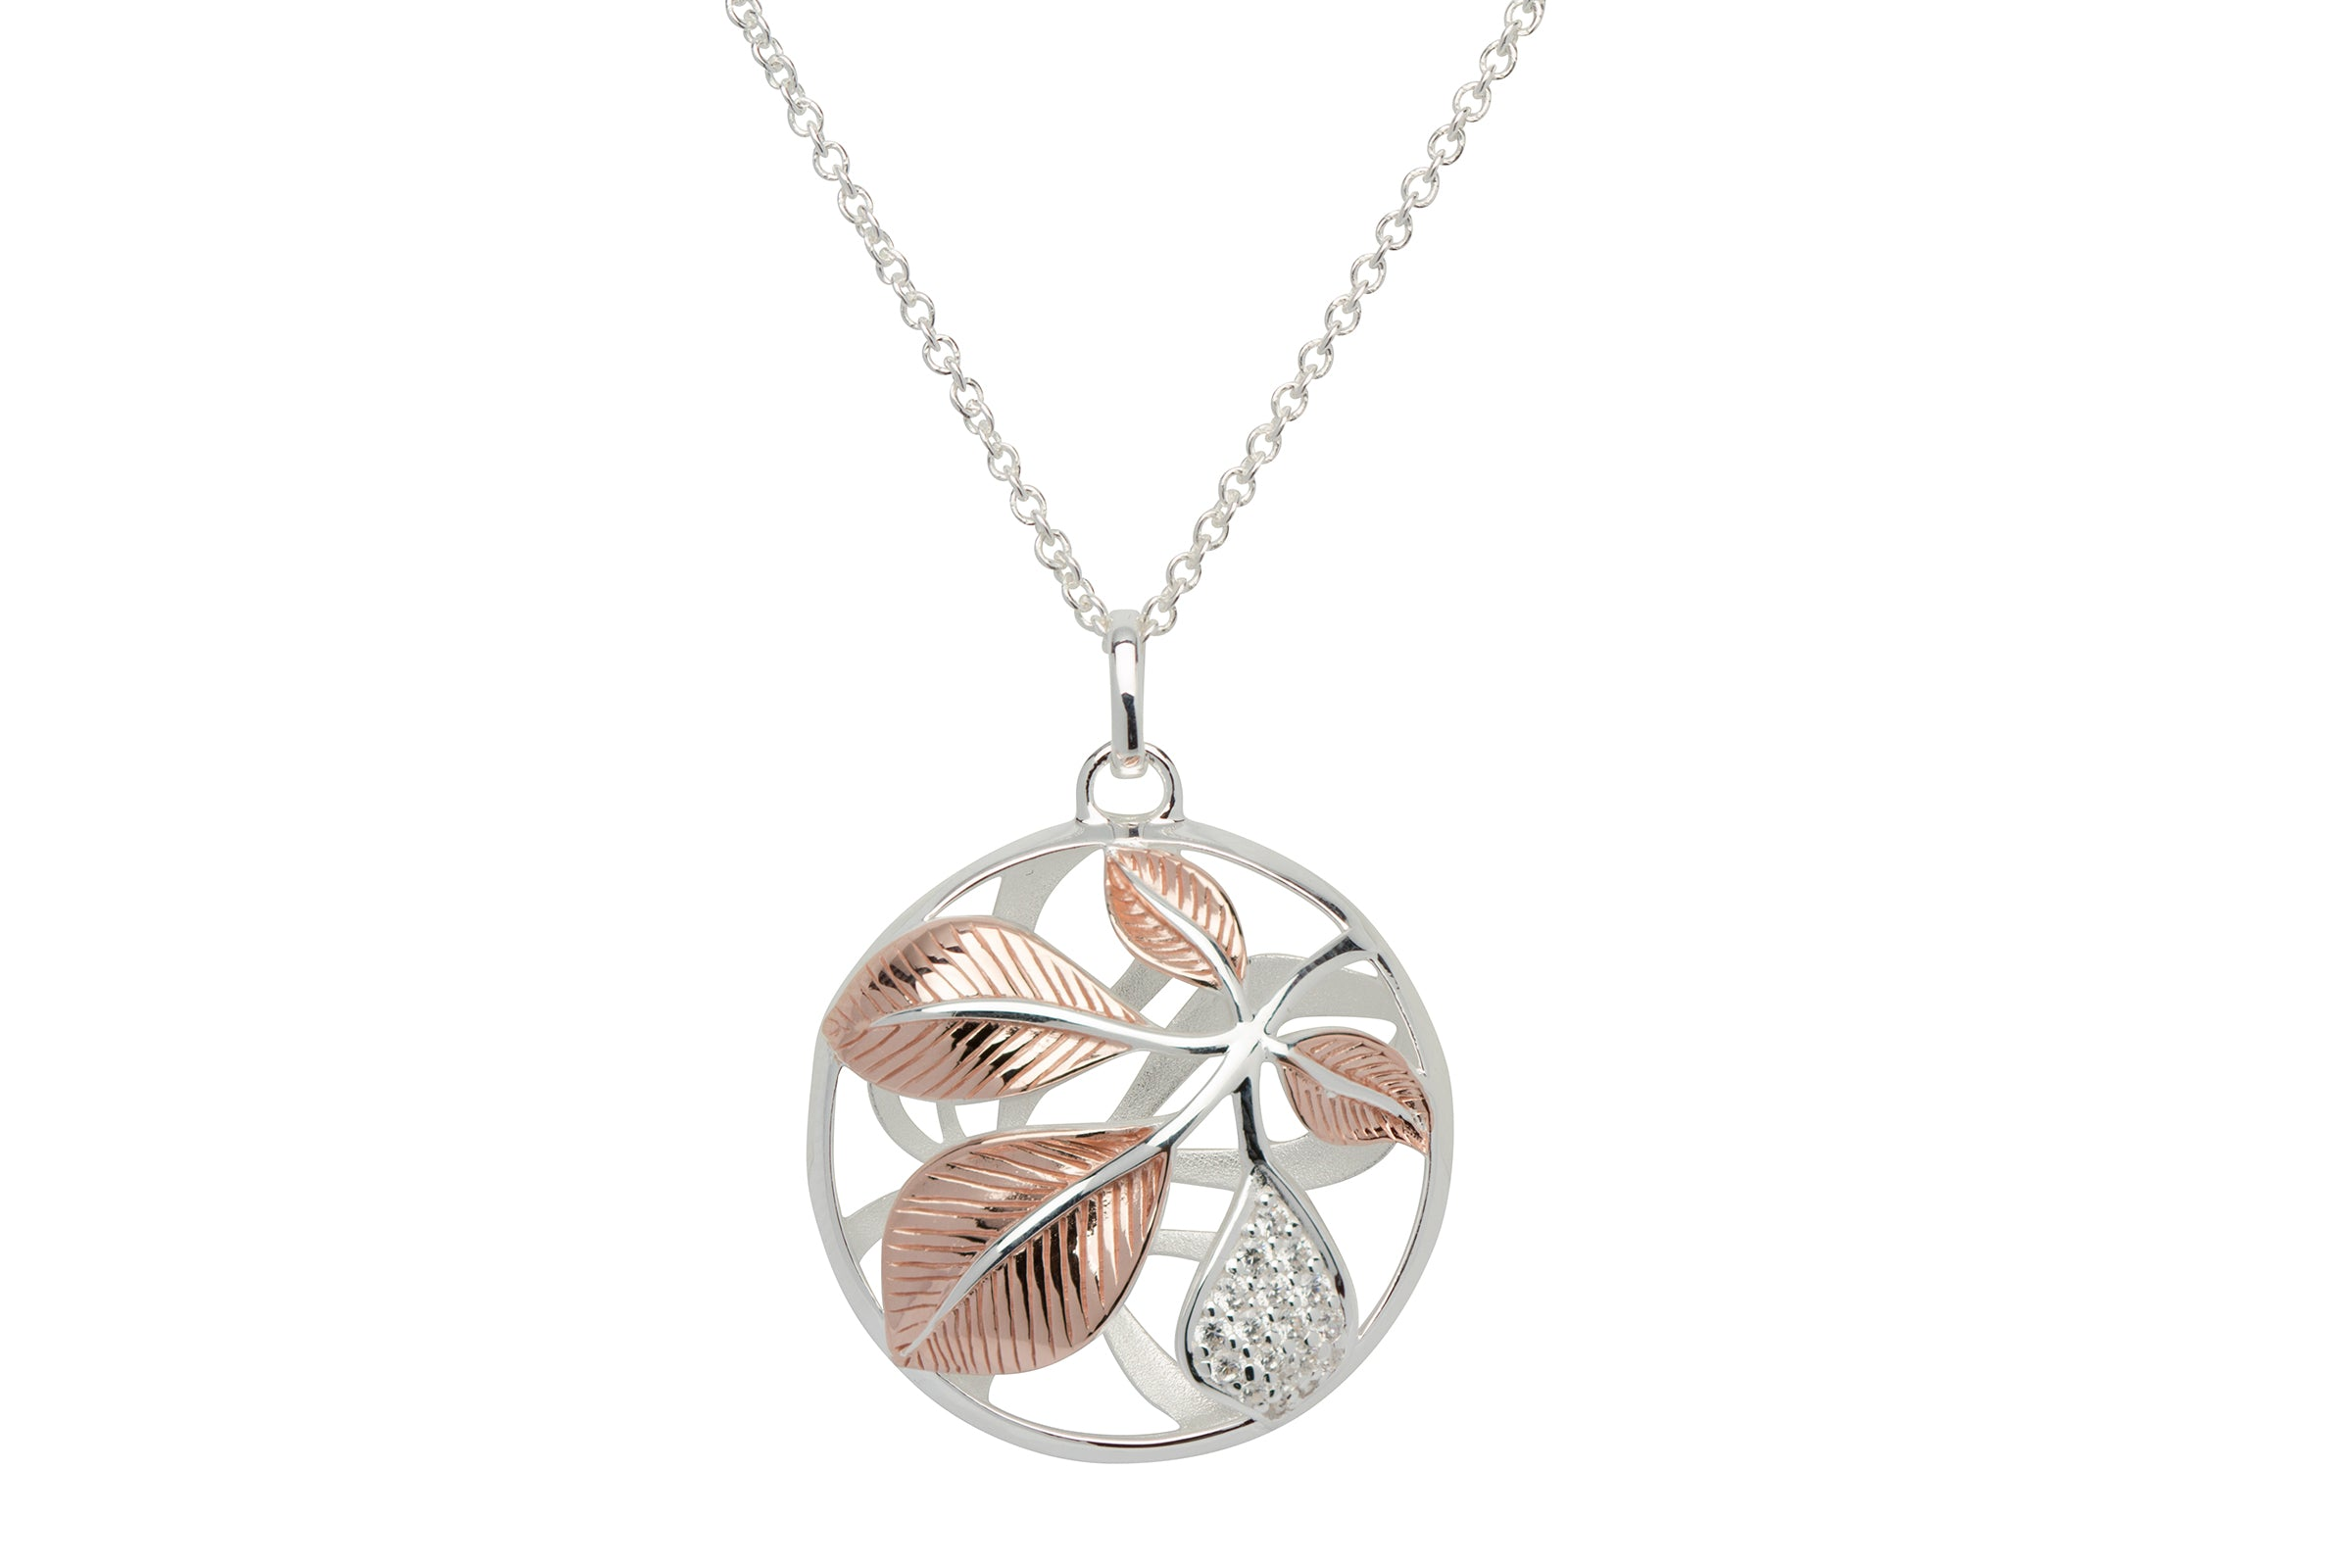 Sterling Silver and Rose Gold Plate Leaf Round Pendant and Chain